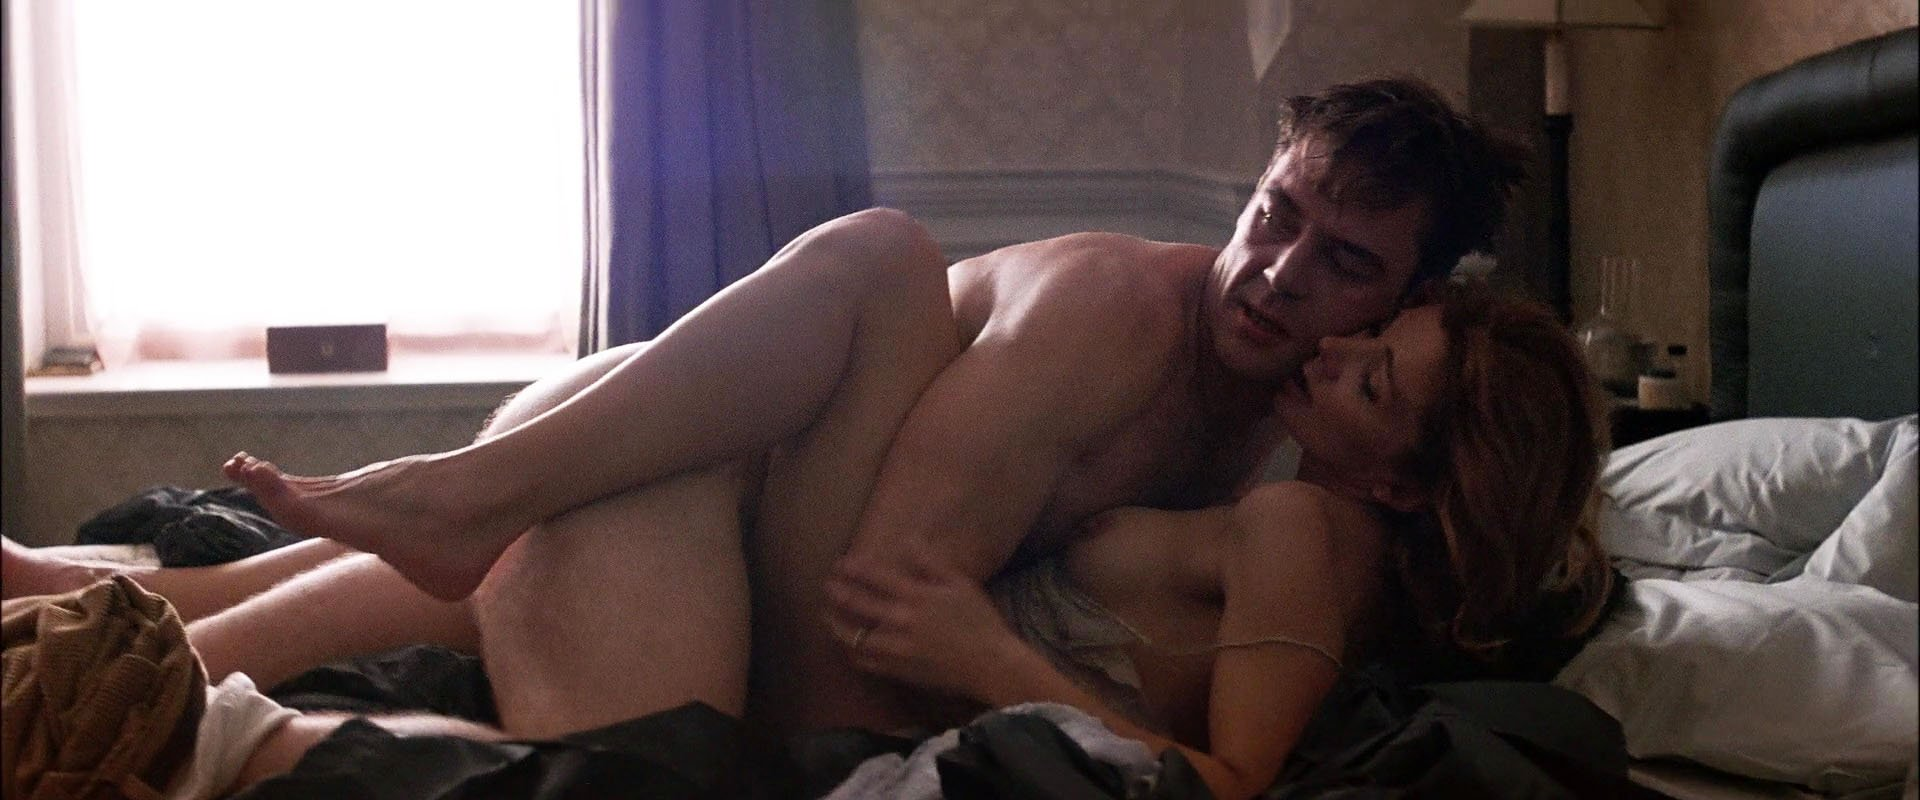 Movies hot sex scene like this